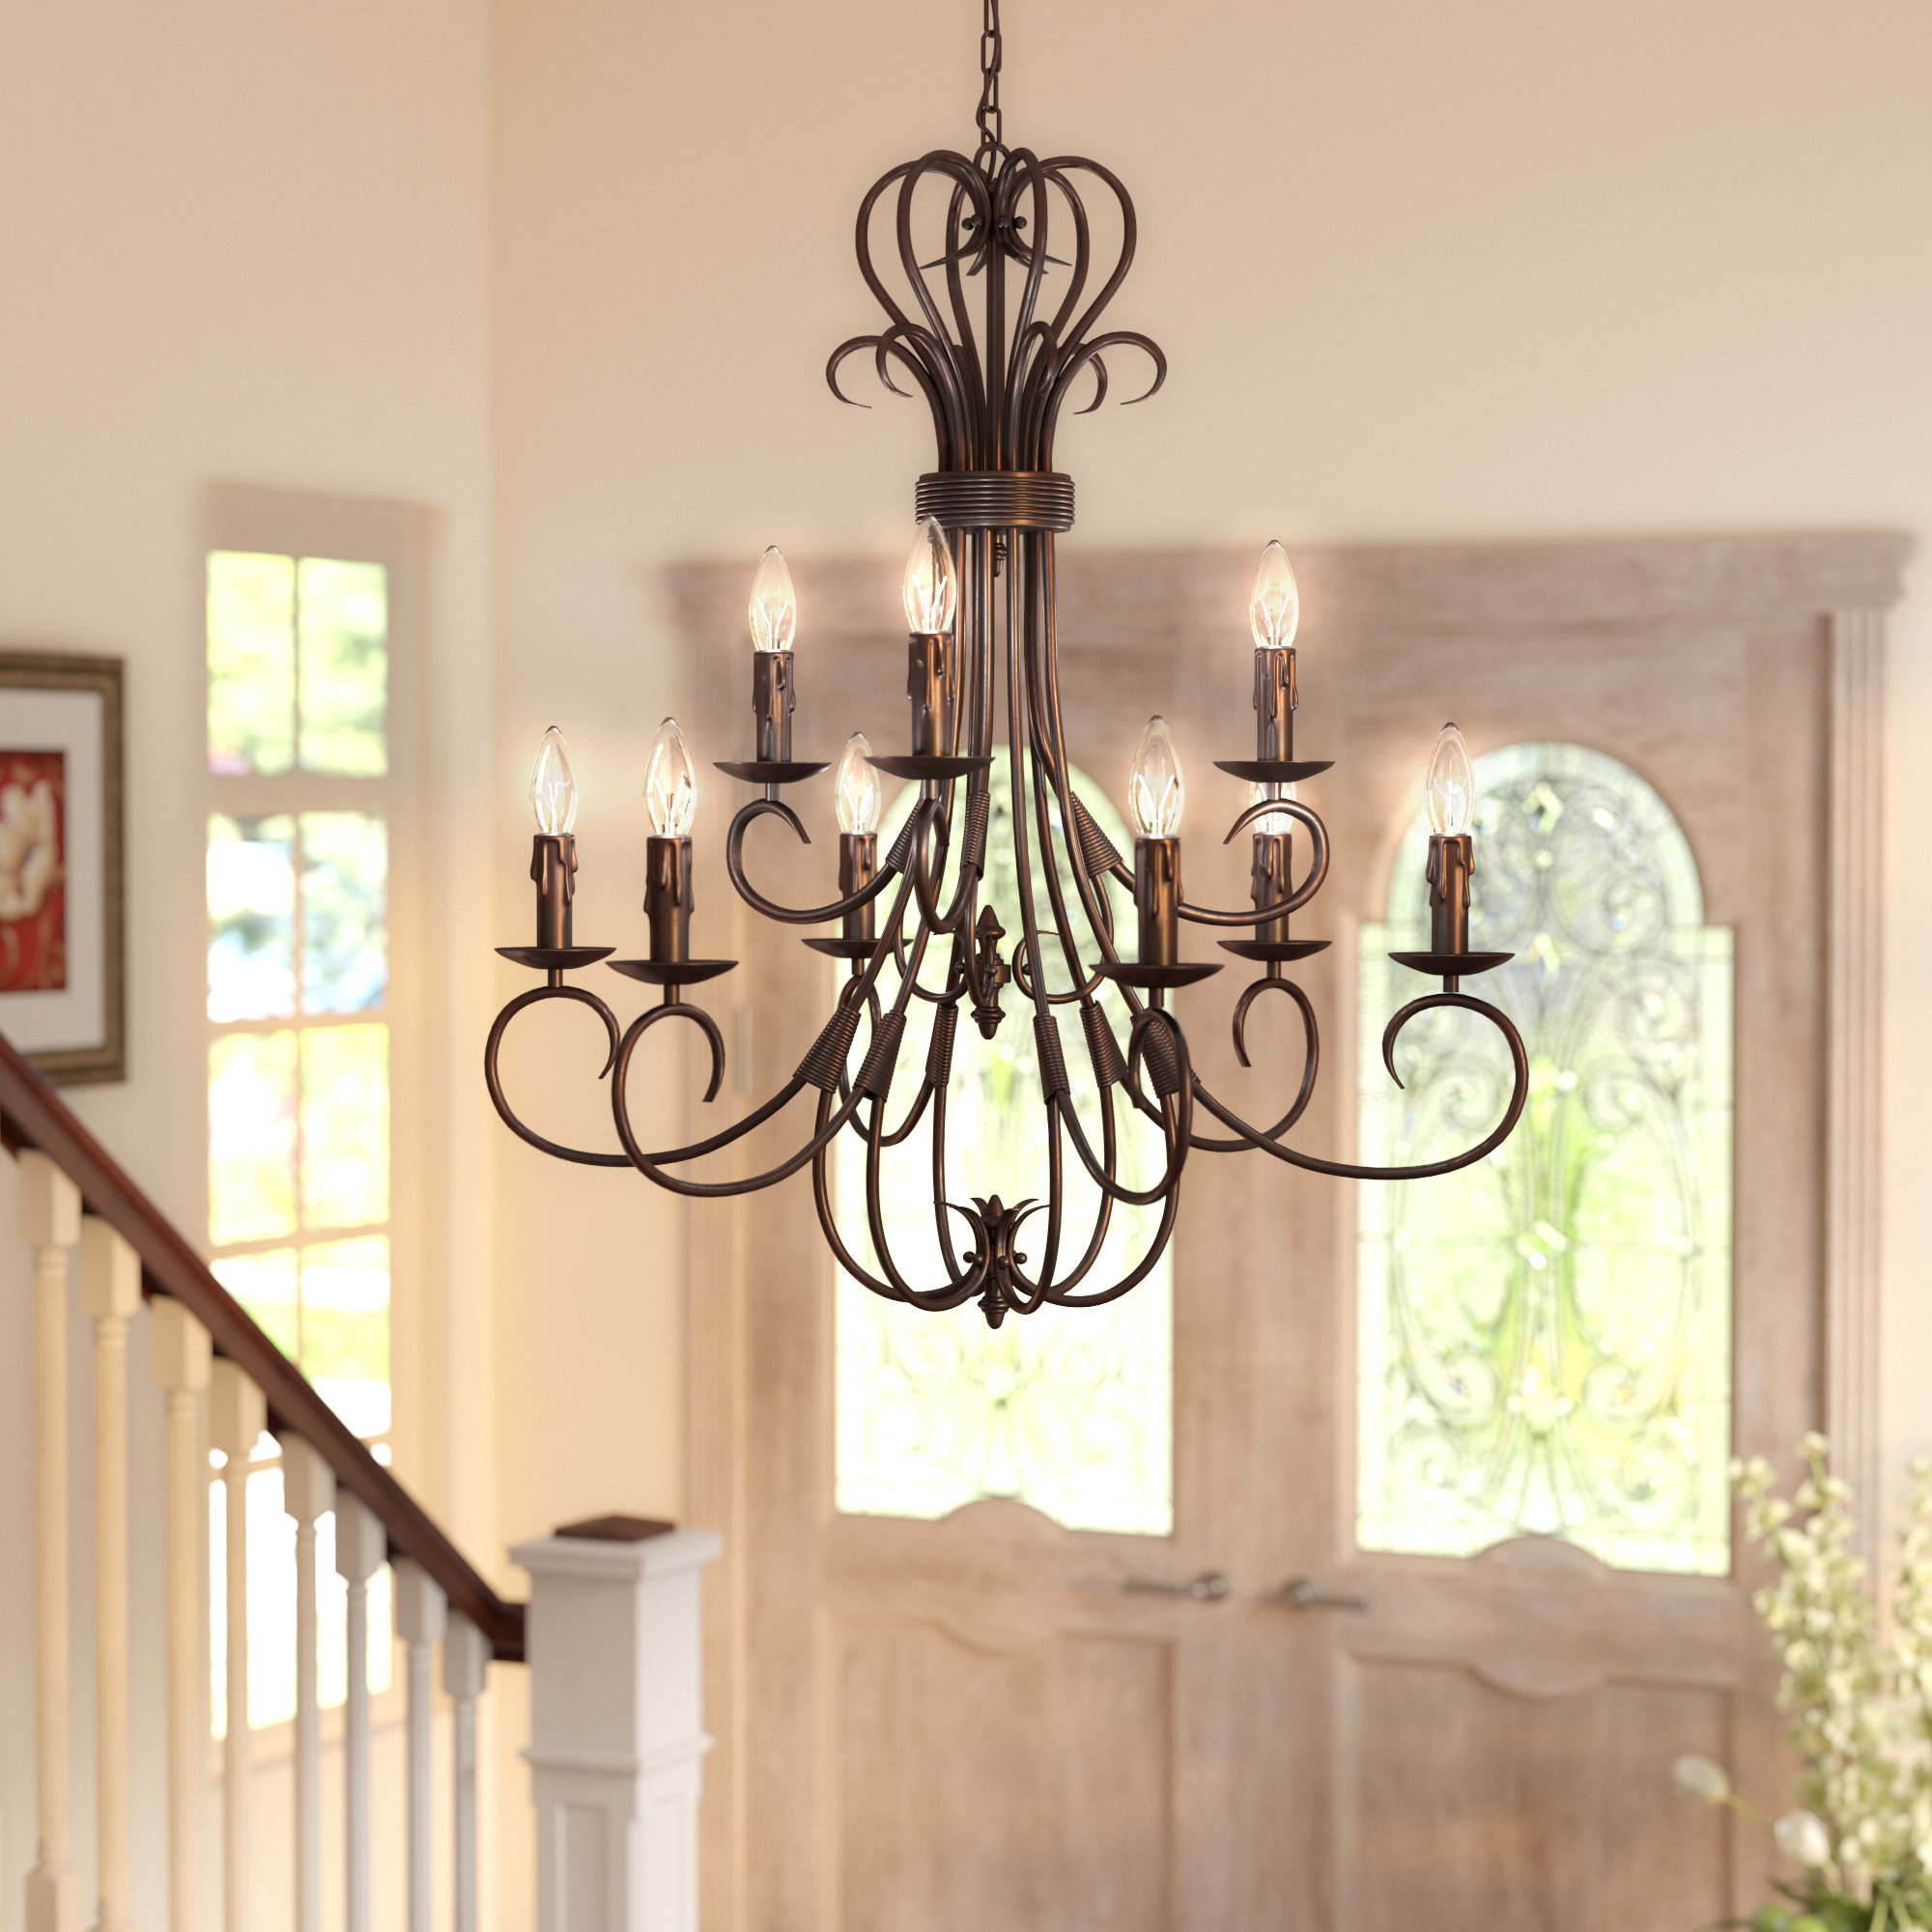 Wayfair With Gaines 9 Light Candle Style Chandeliers (View 21 of 25)